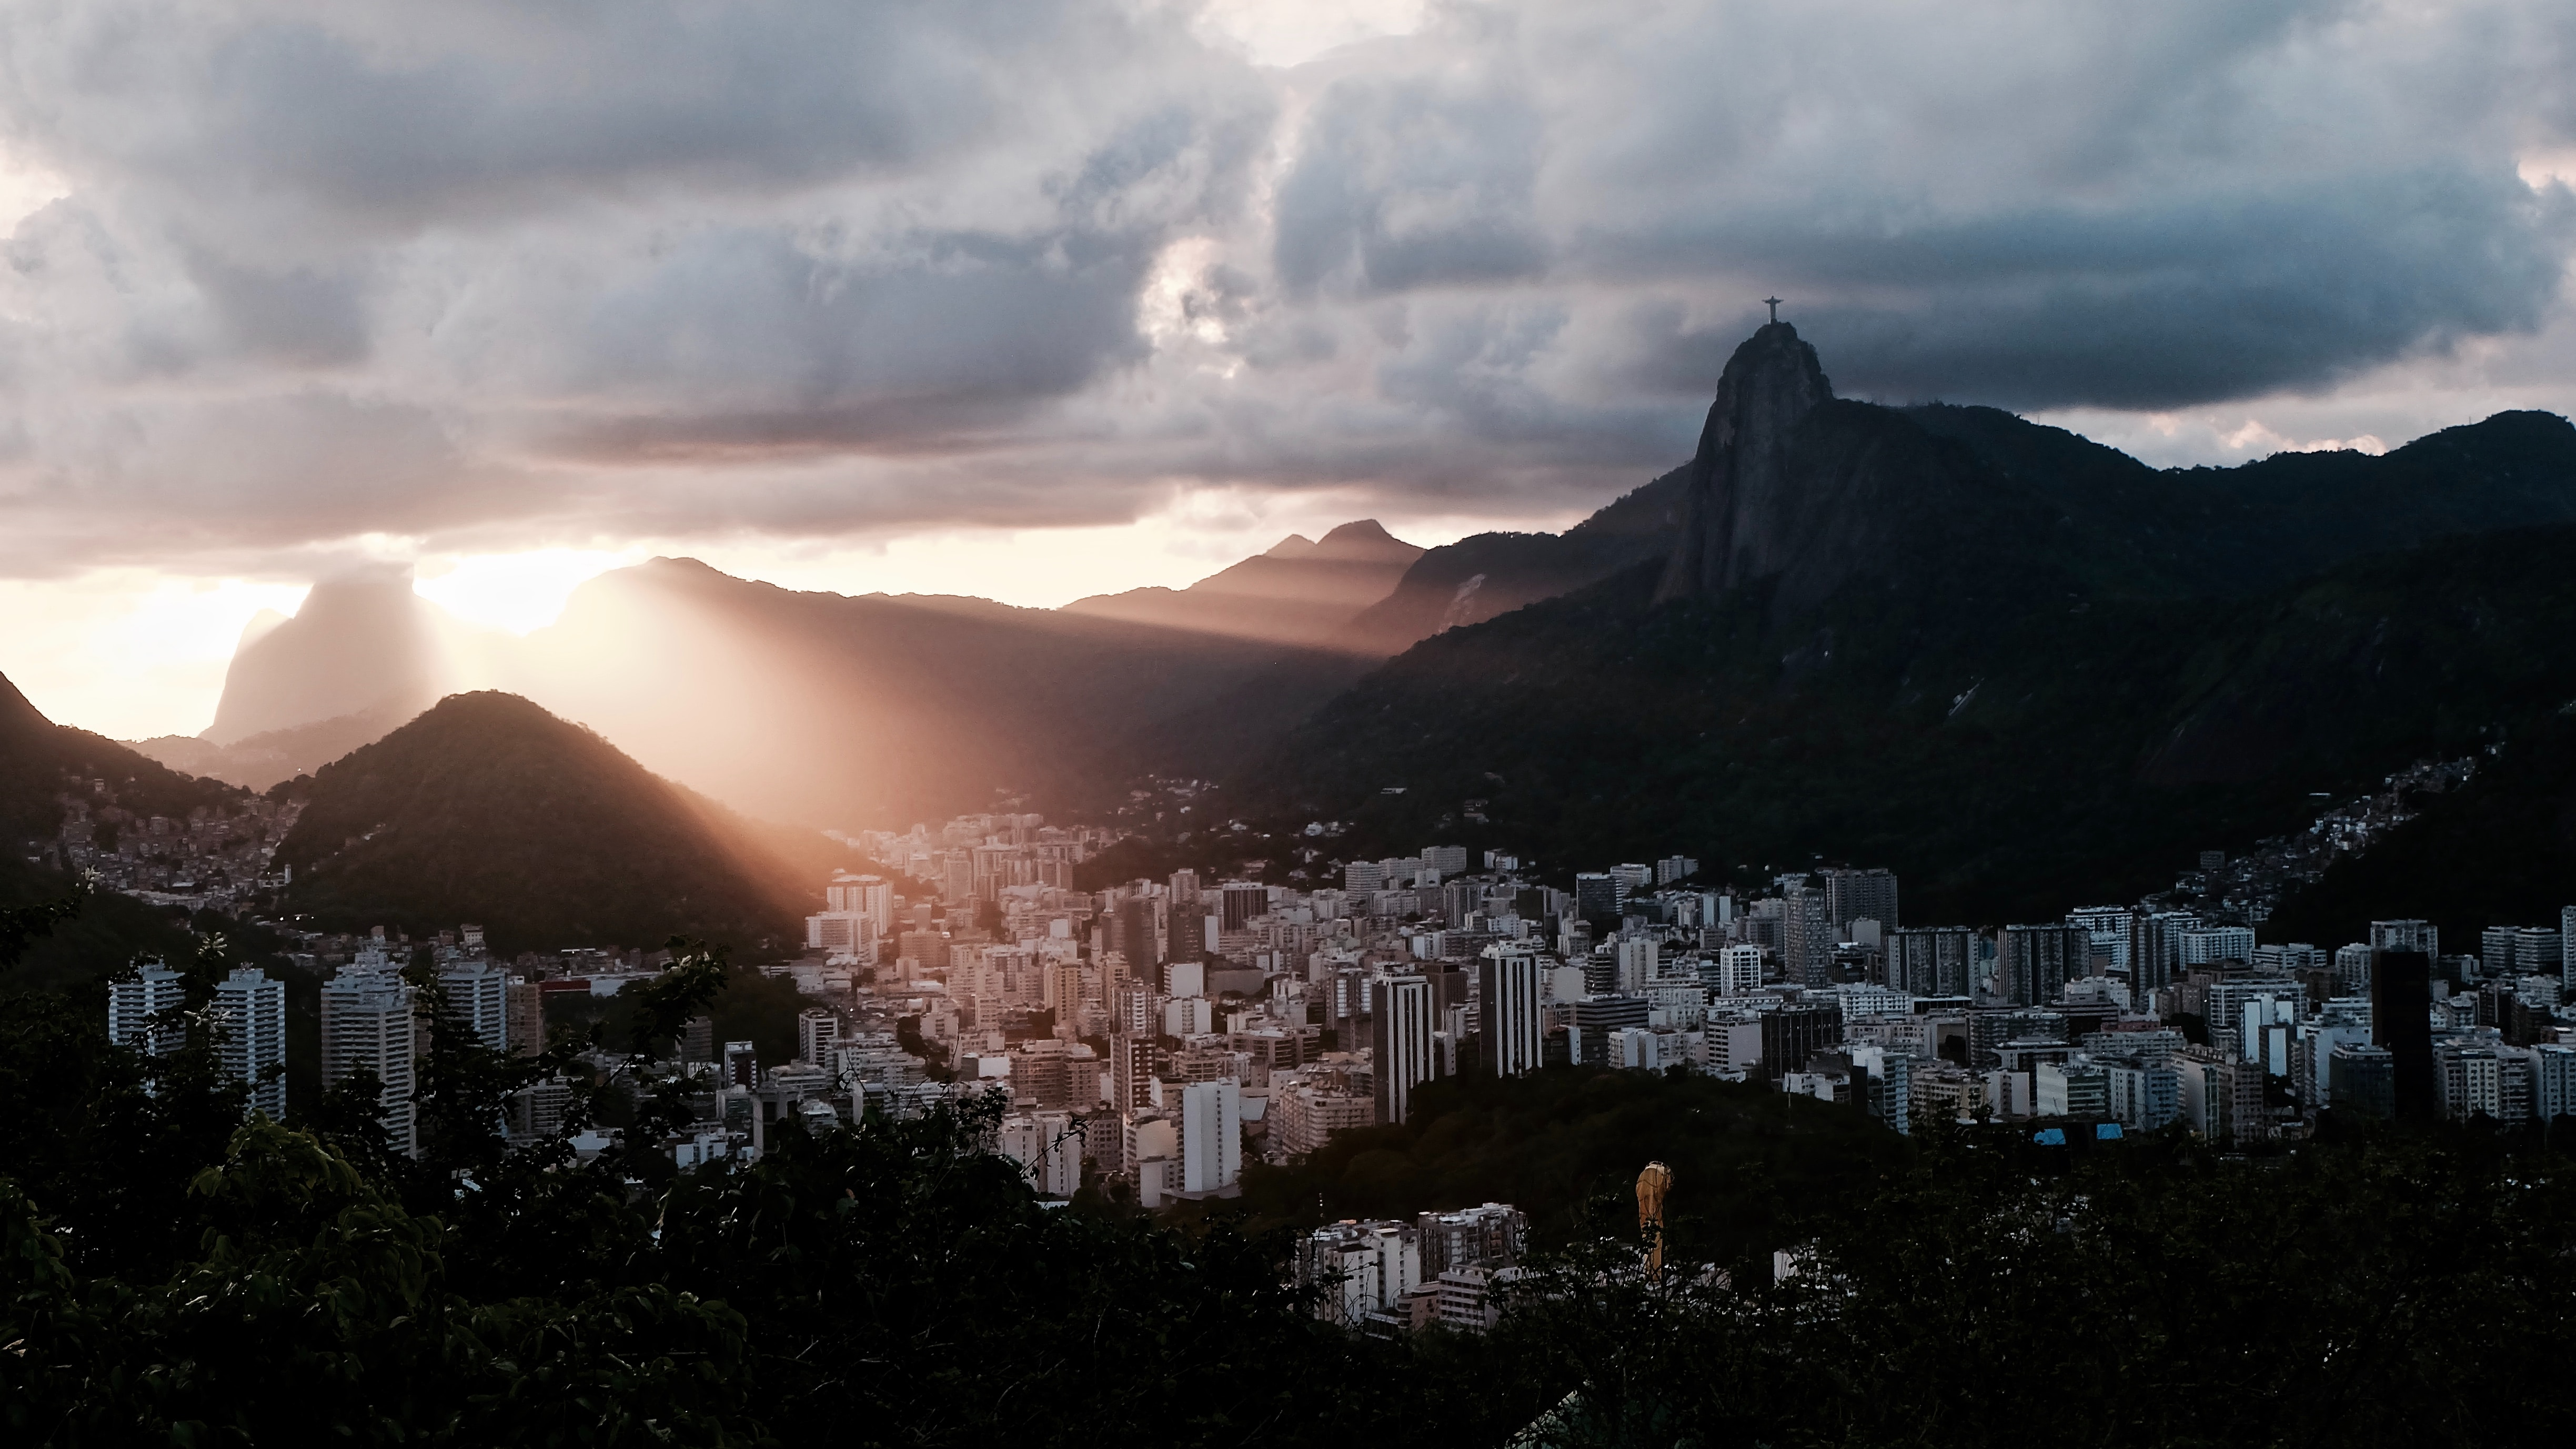 South America Believed to Hold Future of Low-Cost Cannabis Cultivation